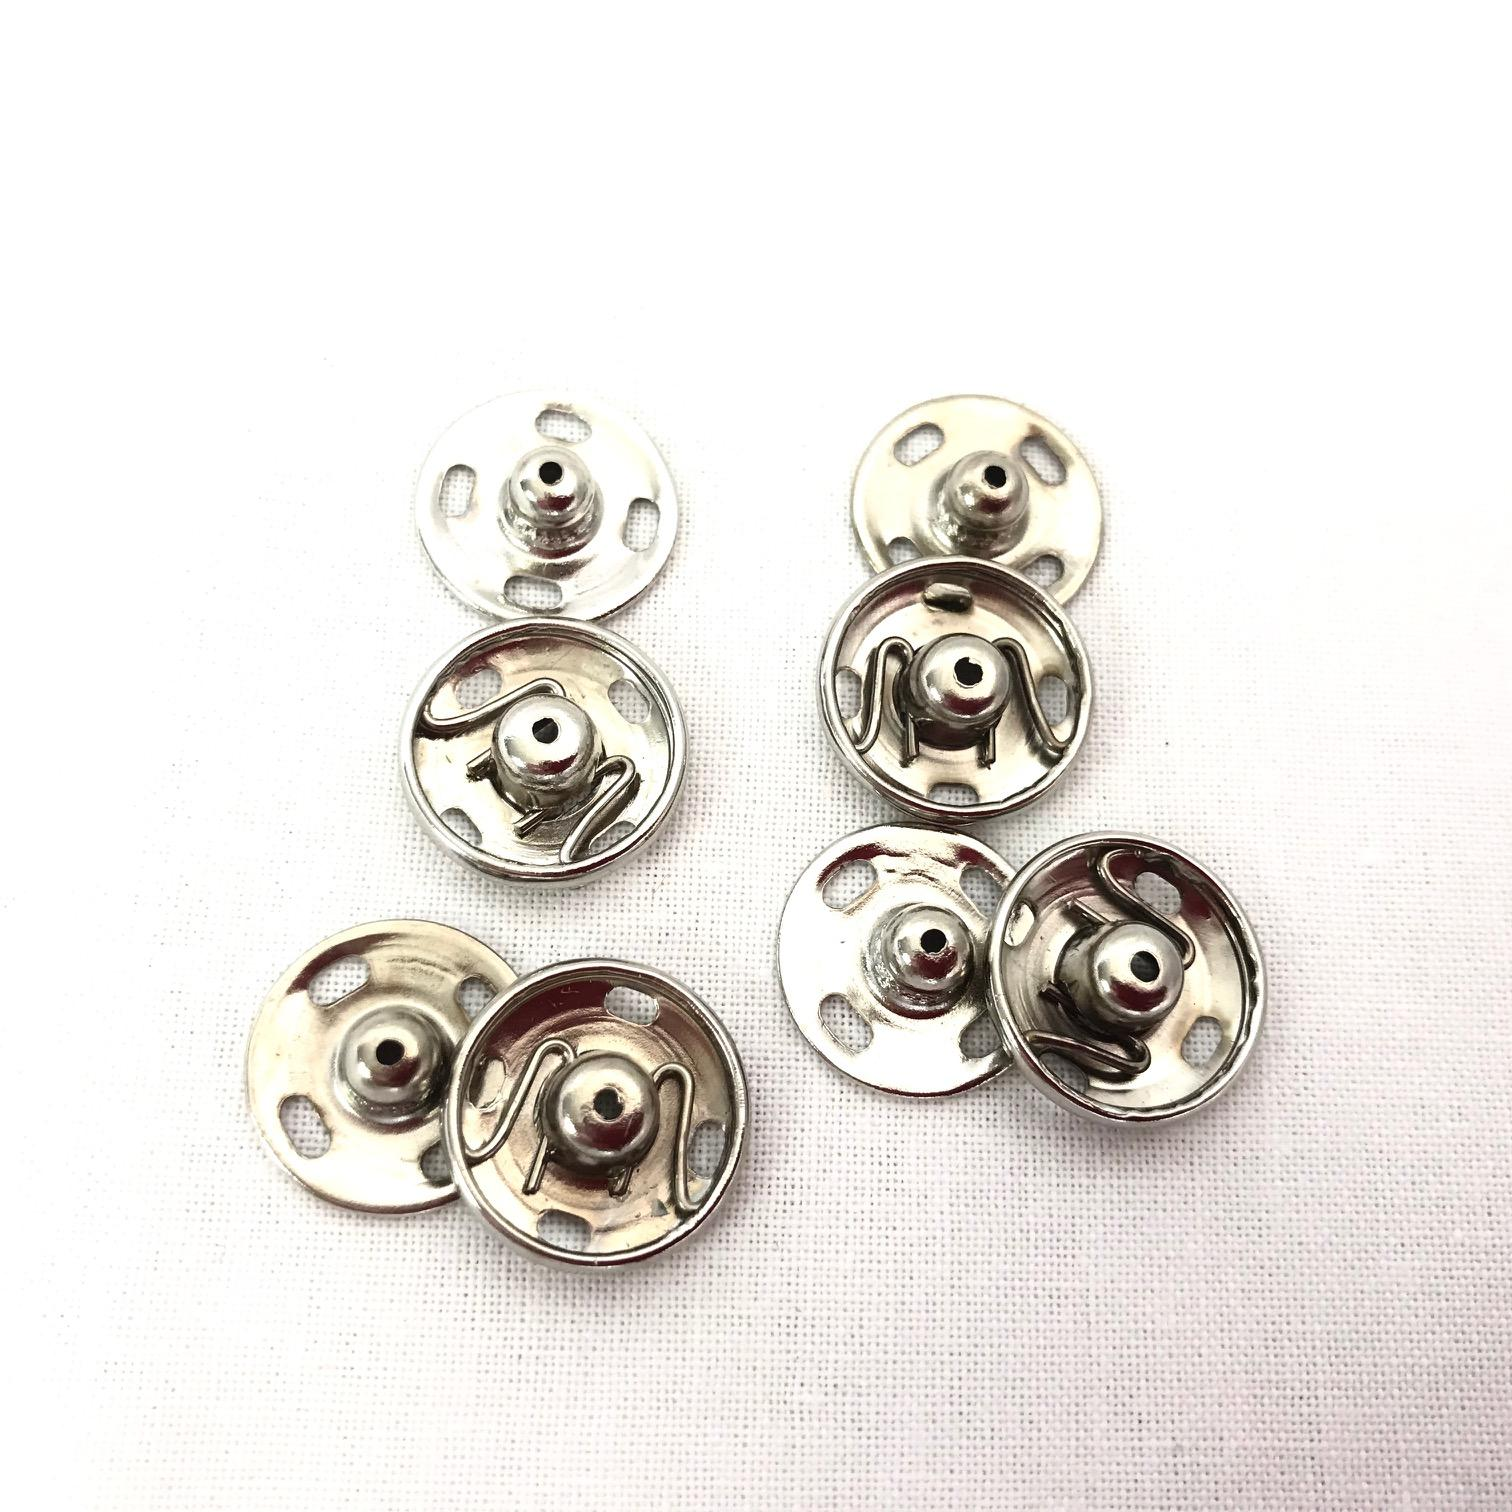 Boutons pression 15mm couture mercerie